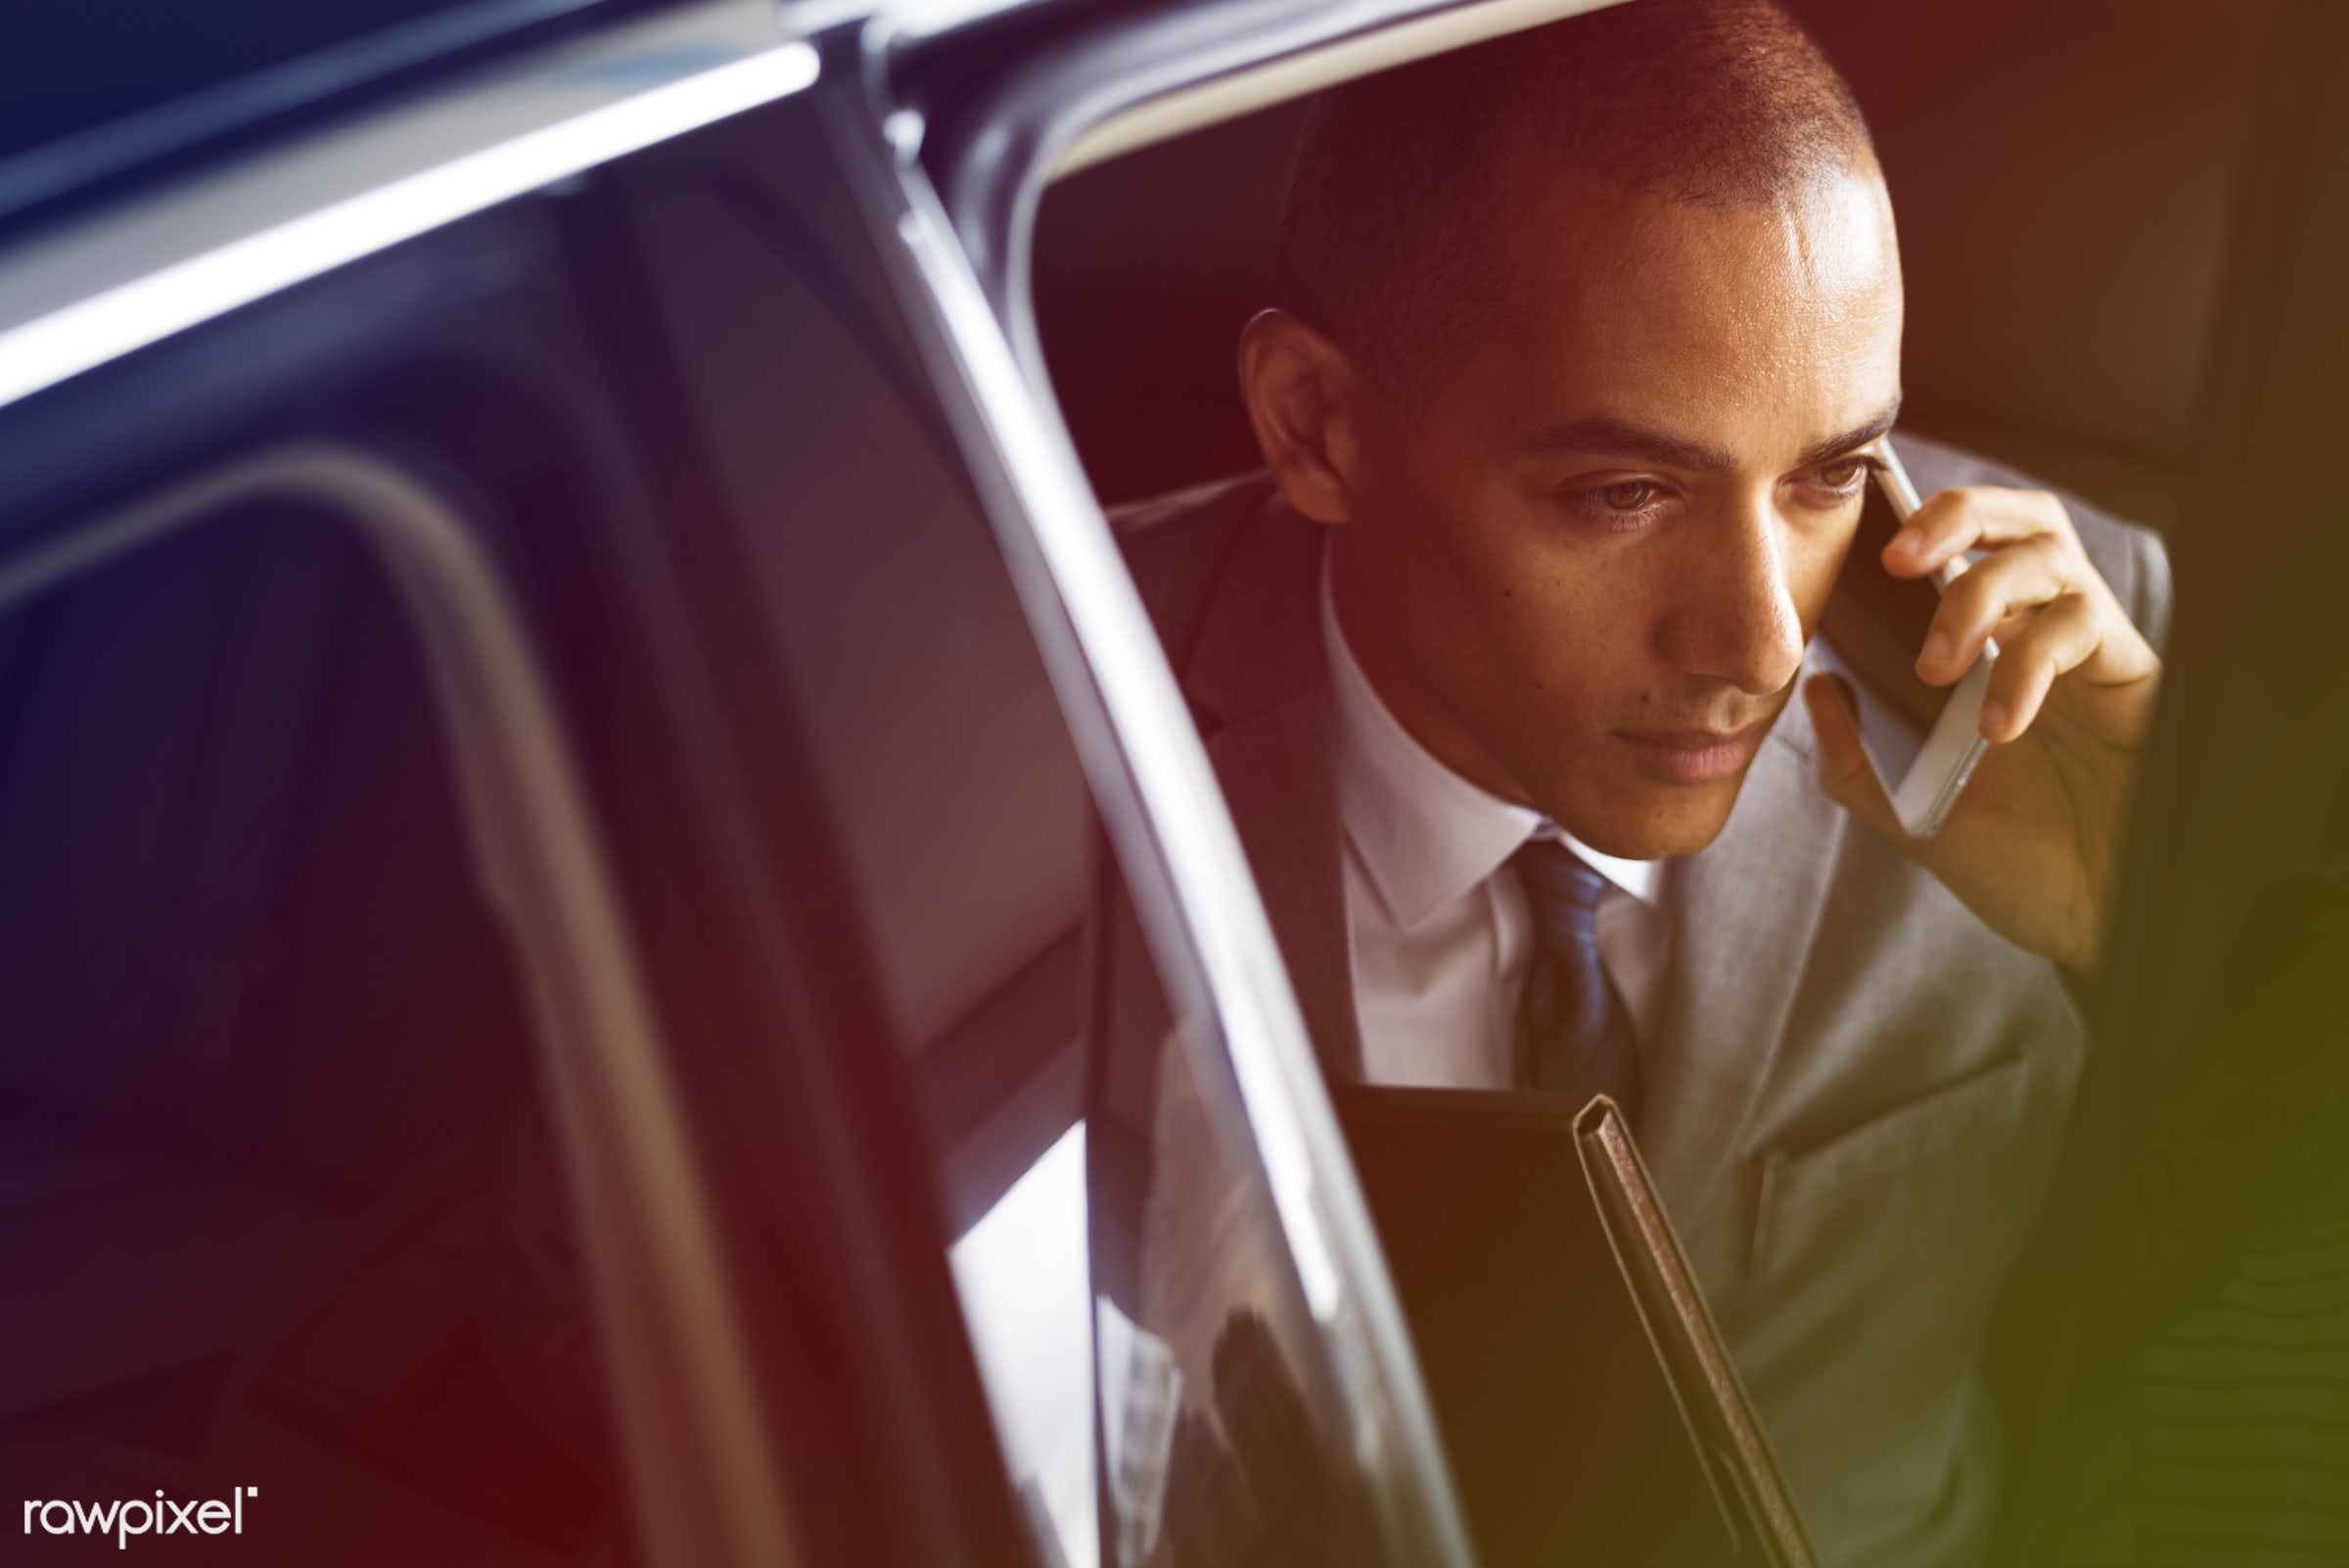 adult, back seat, business, businessman, businessmen, call, candid, car, cellphone, communication, corporate, device,...